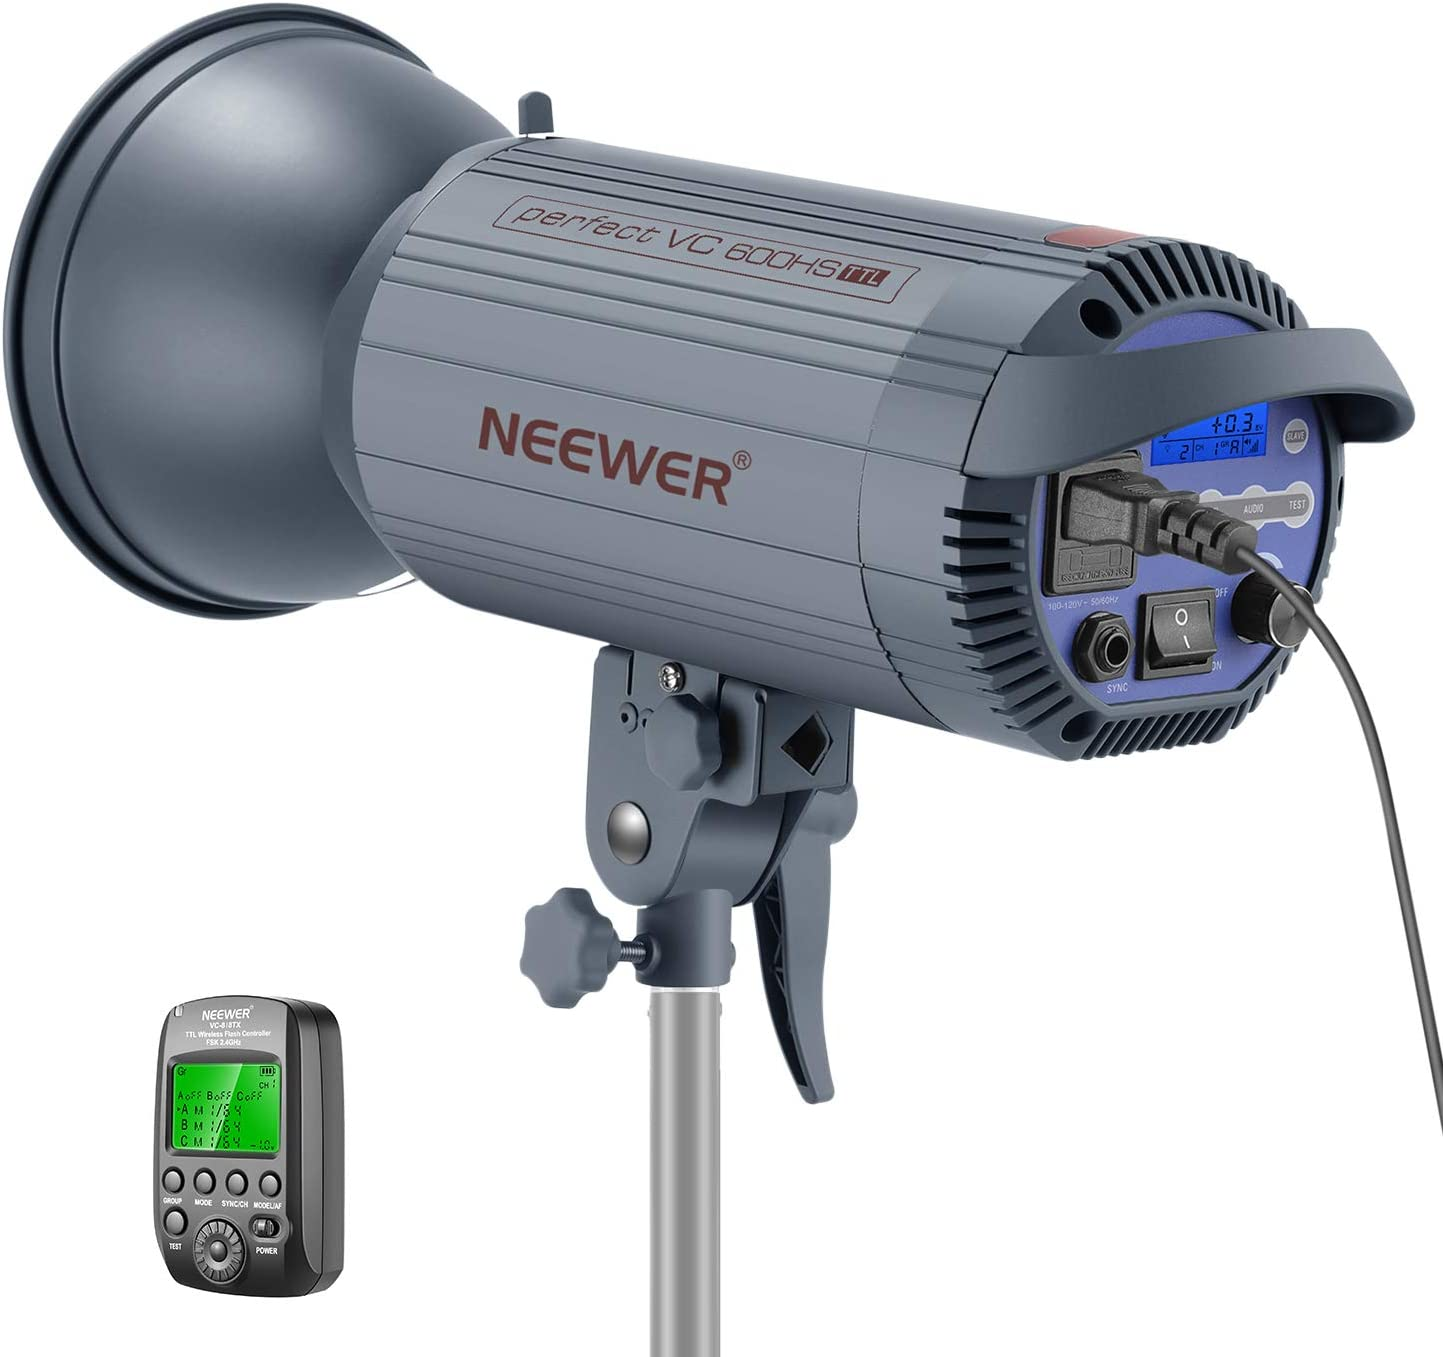 Neewer 600W TTL HSS 1/8000s GN86 Studio Strobe Flash Light Monolight with 2.4G Wireless Trigger for Sony Mirrorless Cameras,Recycle 0.6 Sec, Bowens Mount for Studio Portrait Photography(VC 600HS)